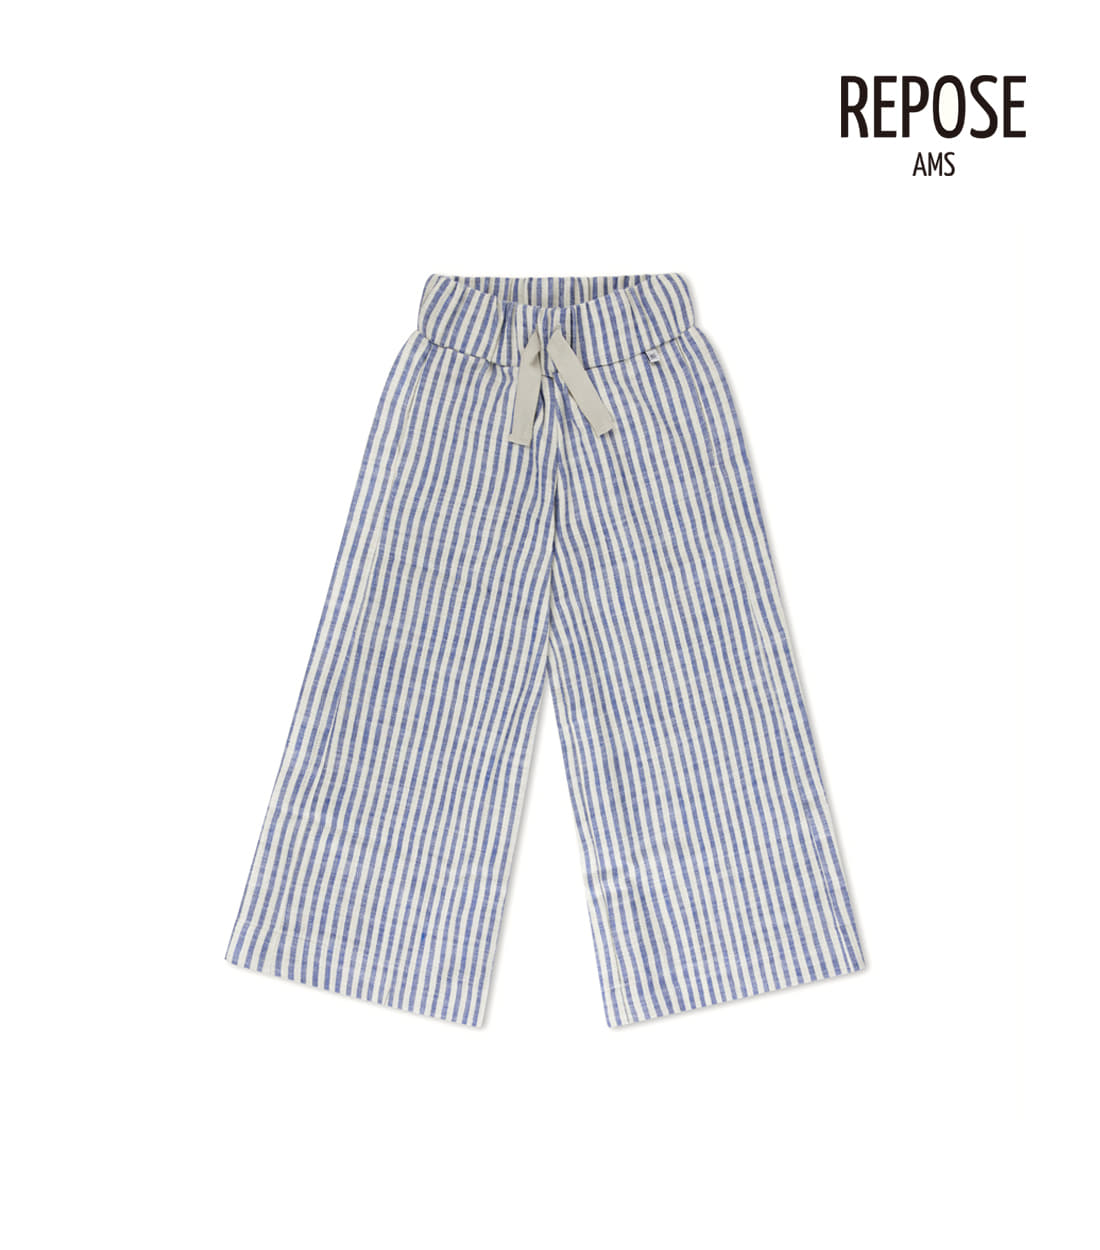 리포즈암스 CULOTTE / BLUE STRIPE